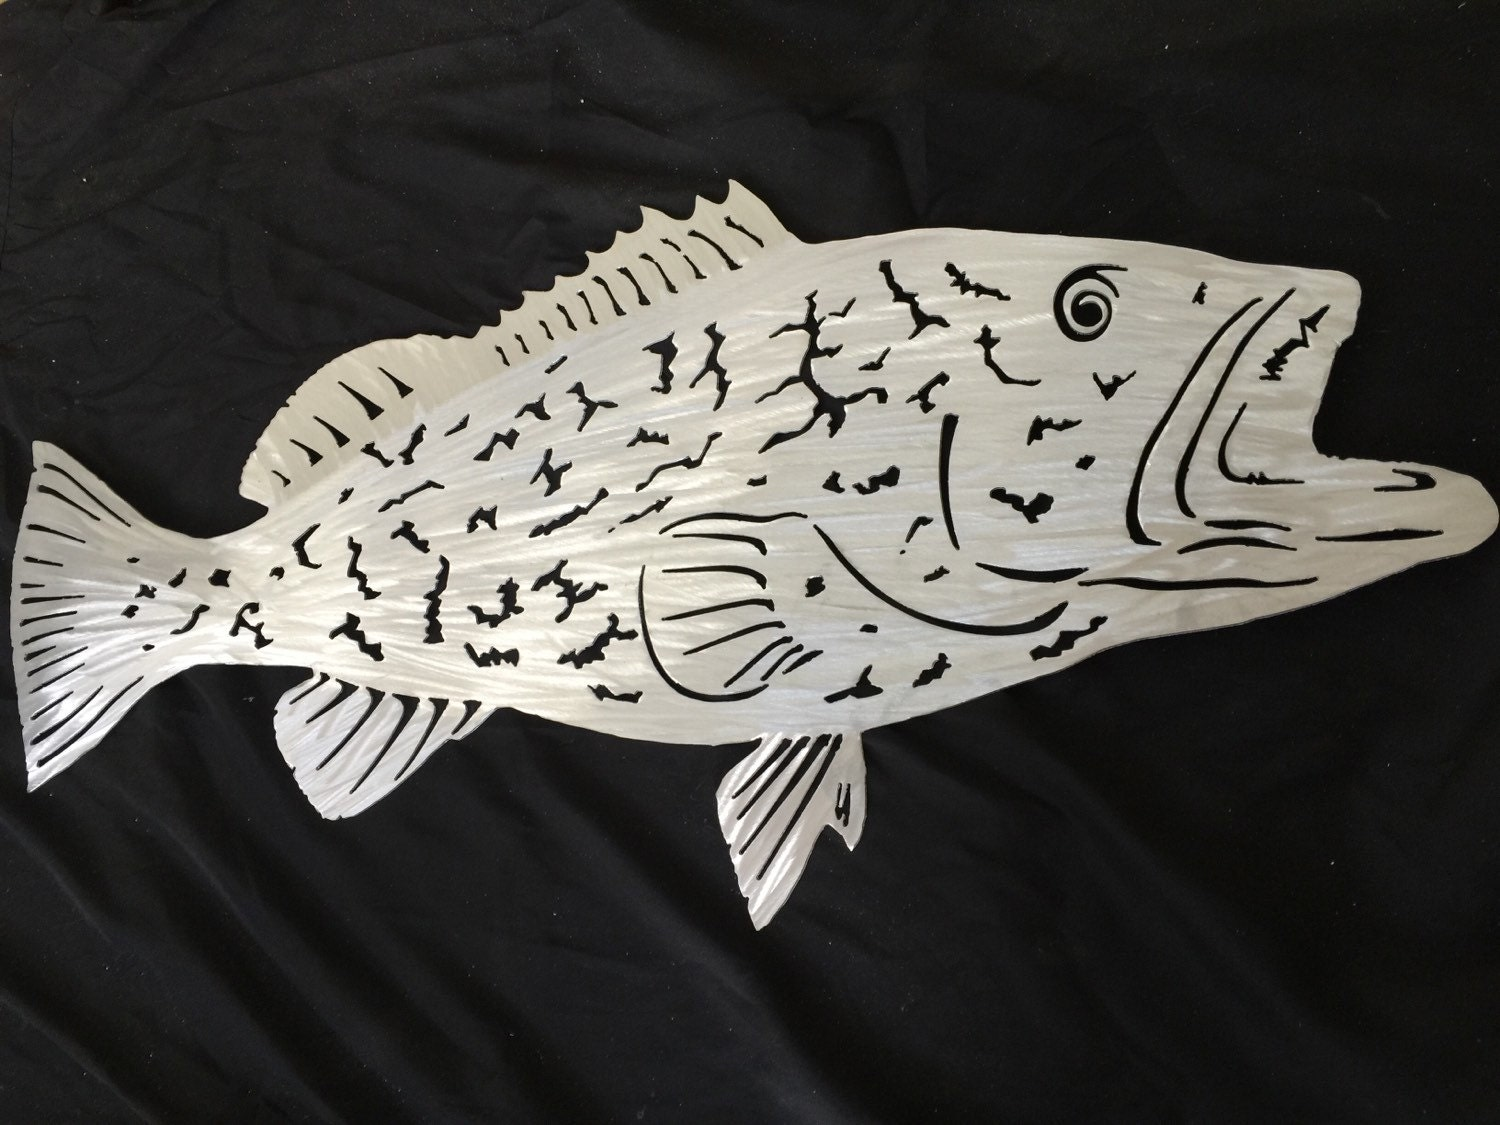 Grouper metal fish art wall art sculpture fish mount for Fish metal wall art